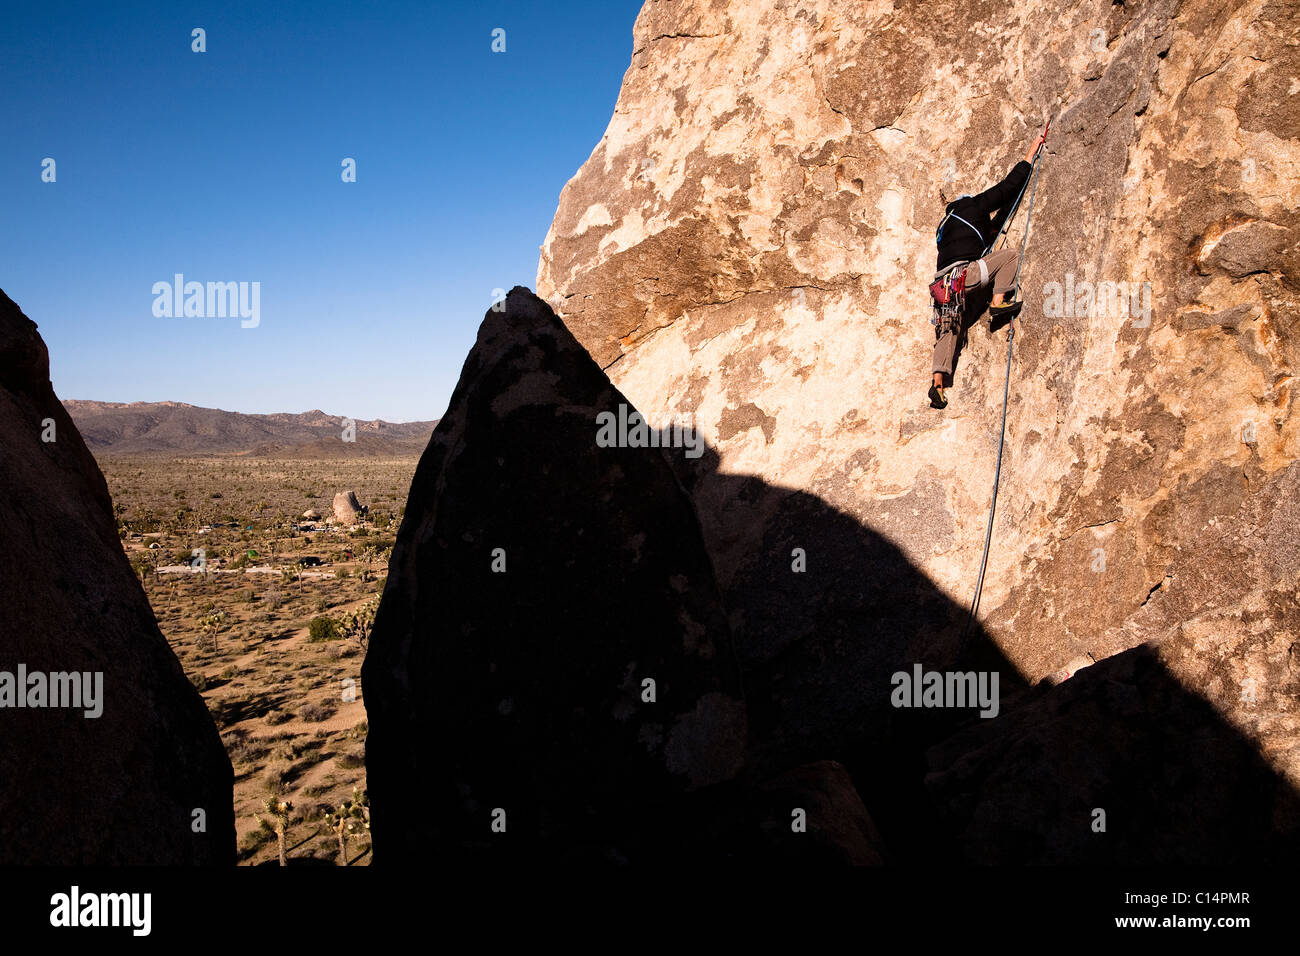 A male climber works his way up past the first bolt on Cryptic (5.8) on Headstone Rock in Joshua Tree National Park, - Stock Image